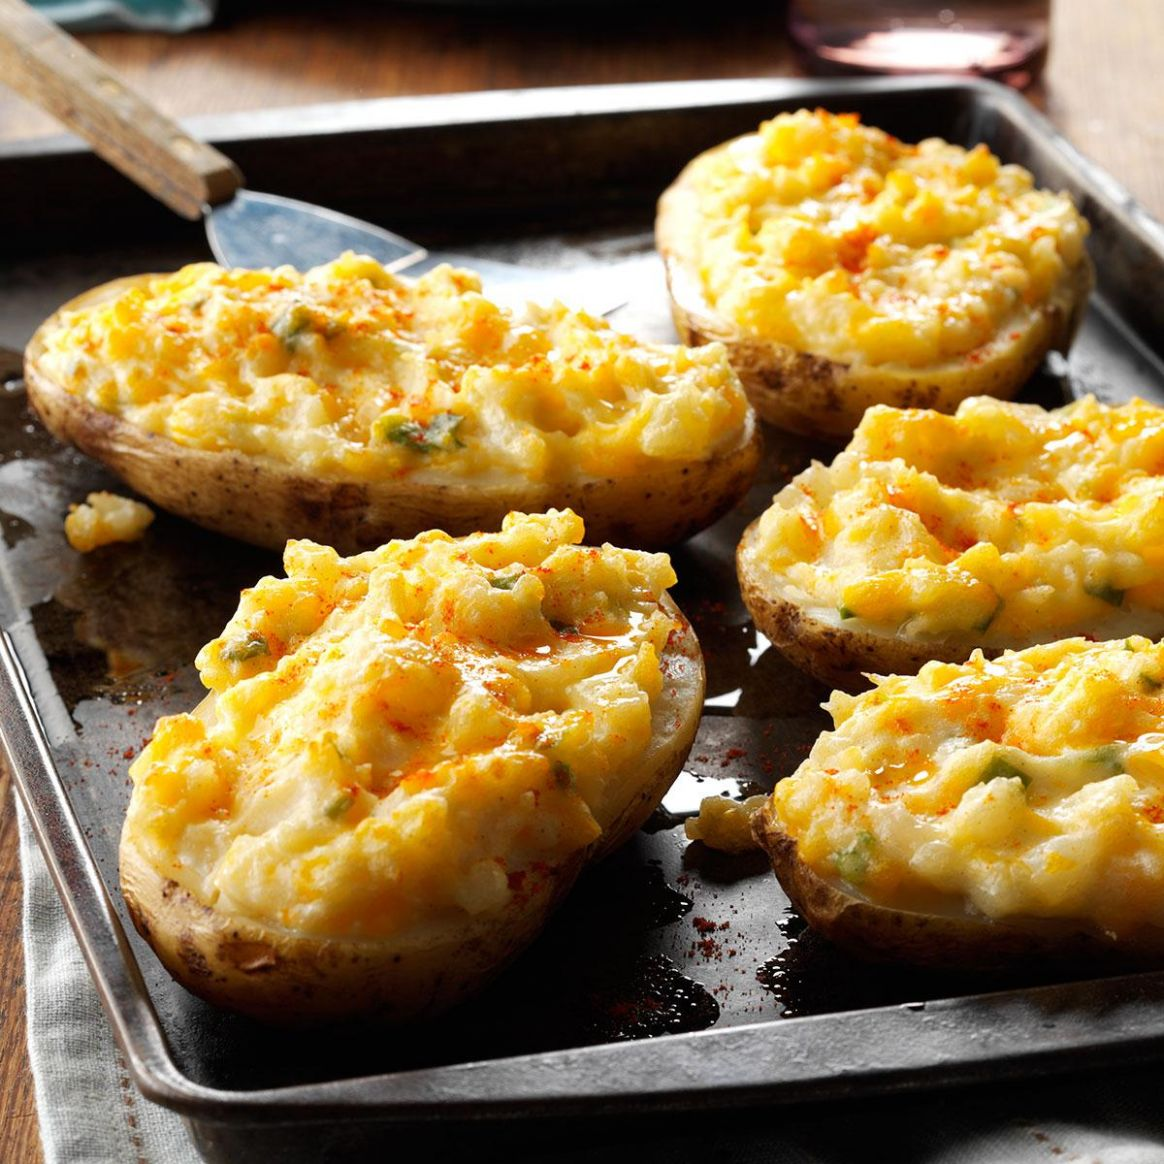 Cheesy Stuffed Baked Potatoes - Recipes Potatoes With Cheese